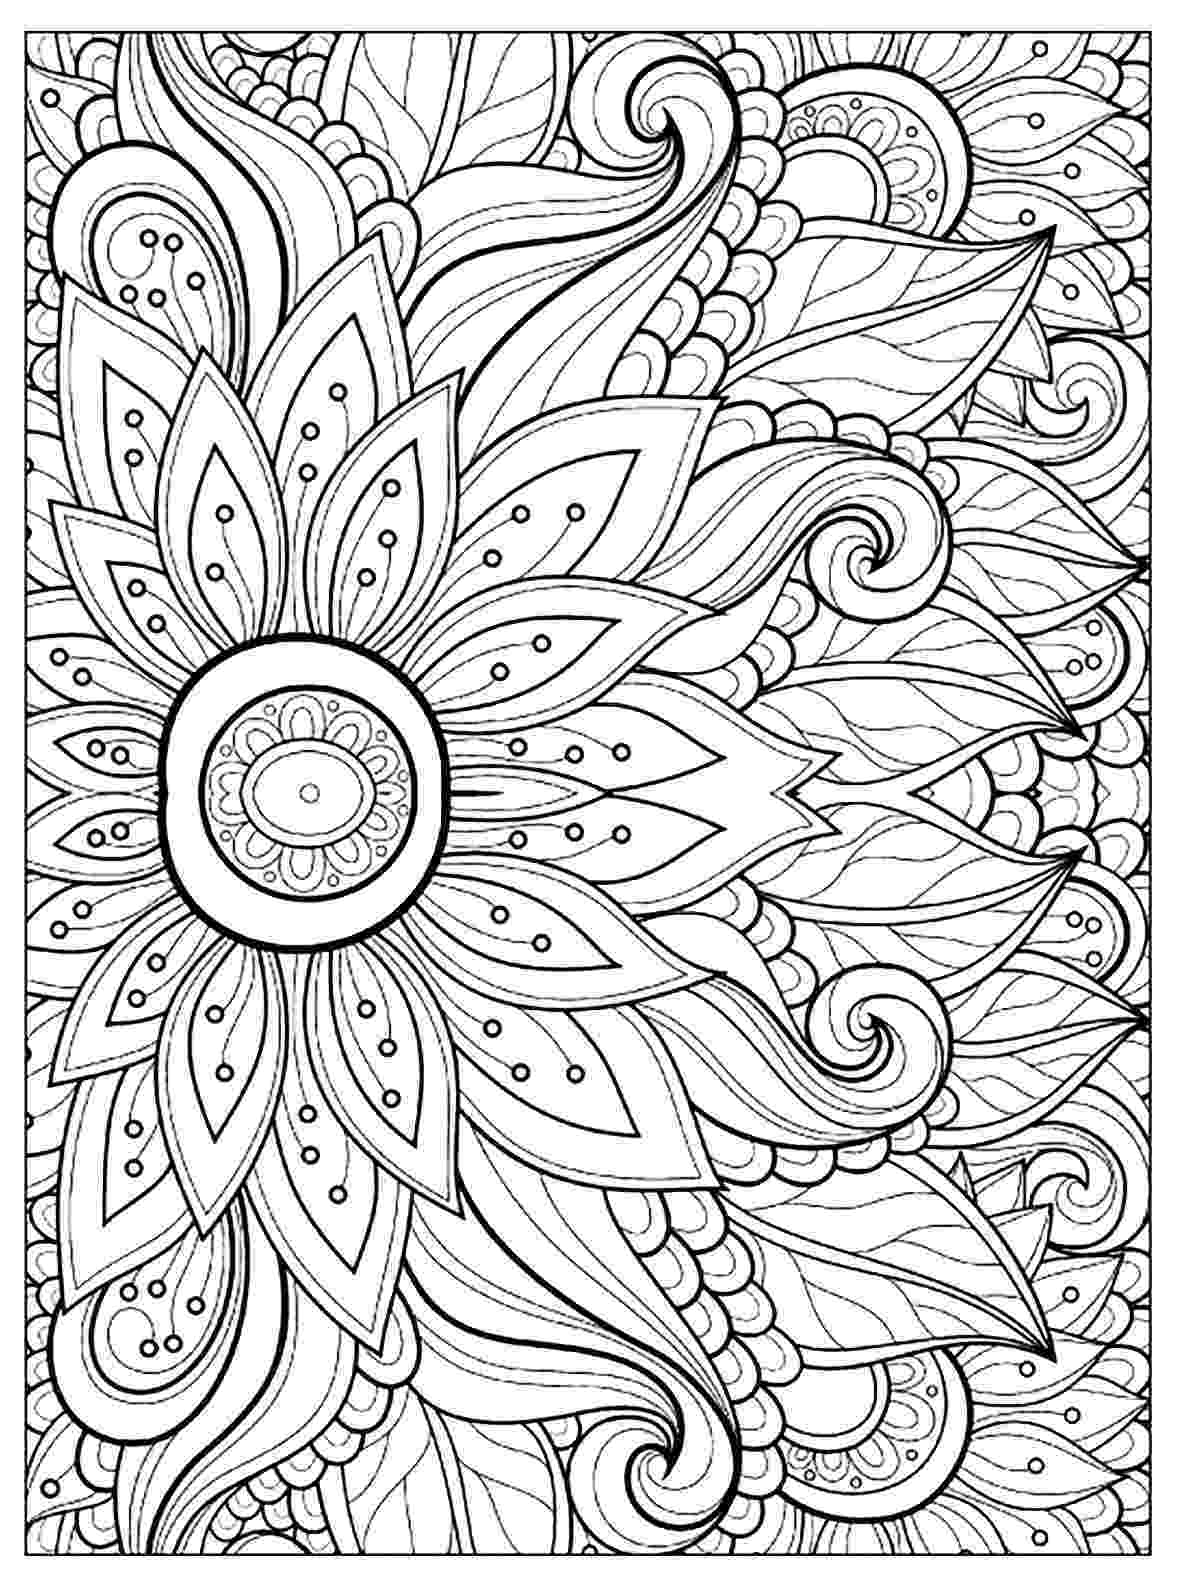 coloring page of flower flower coloring pages for kids flower coloring of page